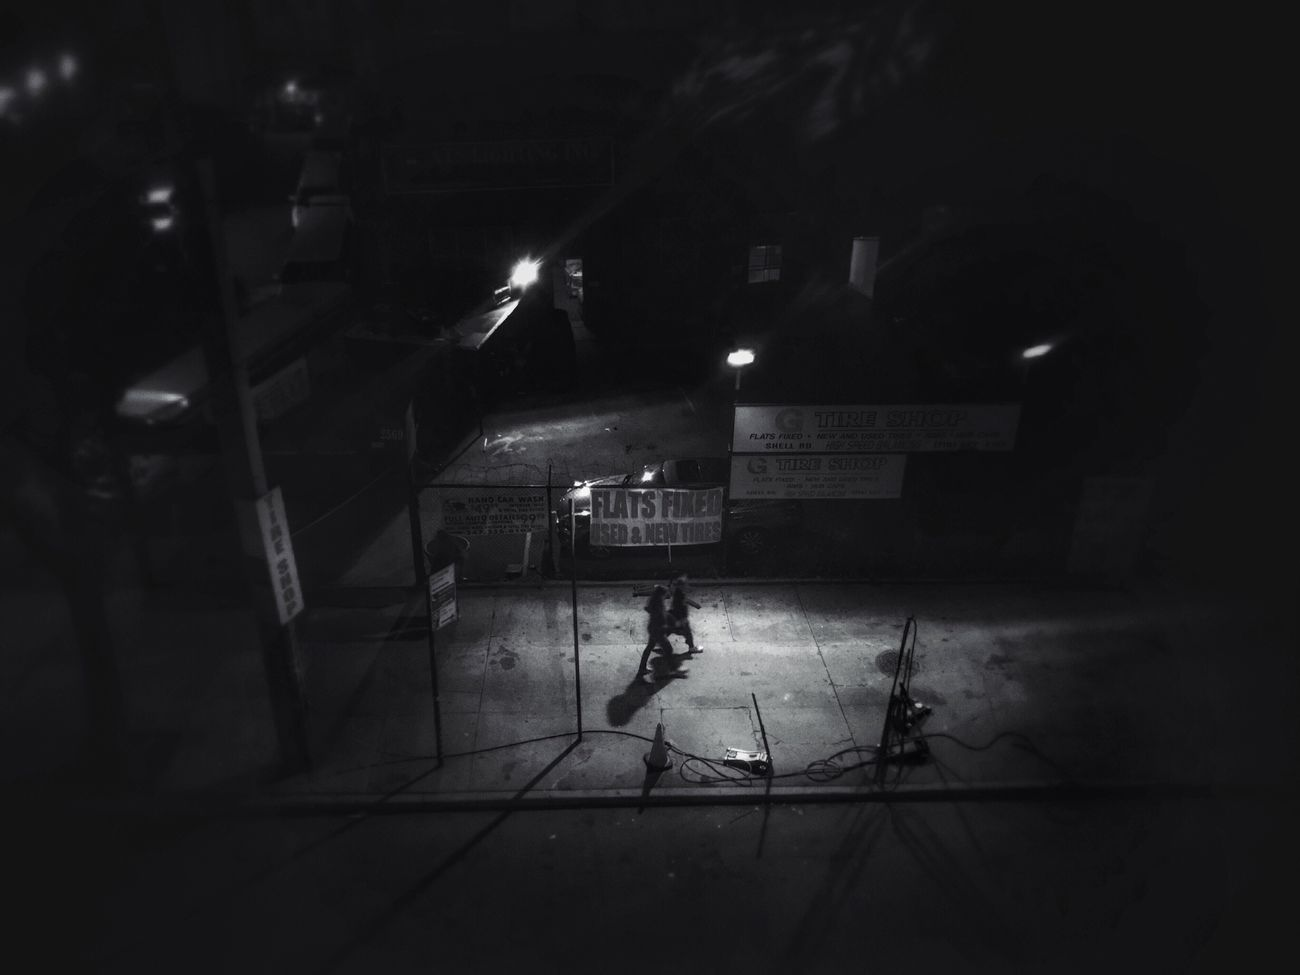 Waiting Game Spot light Night Blackandwhite Photography IPhoneography Snapseed Iphonephotography New York VSCO Iphone7 IPhone Photography Street People Street Photography Brooklyn Iphonesia Real People